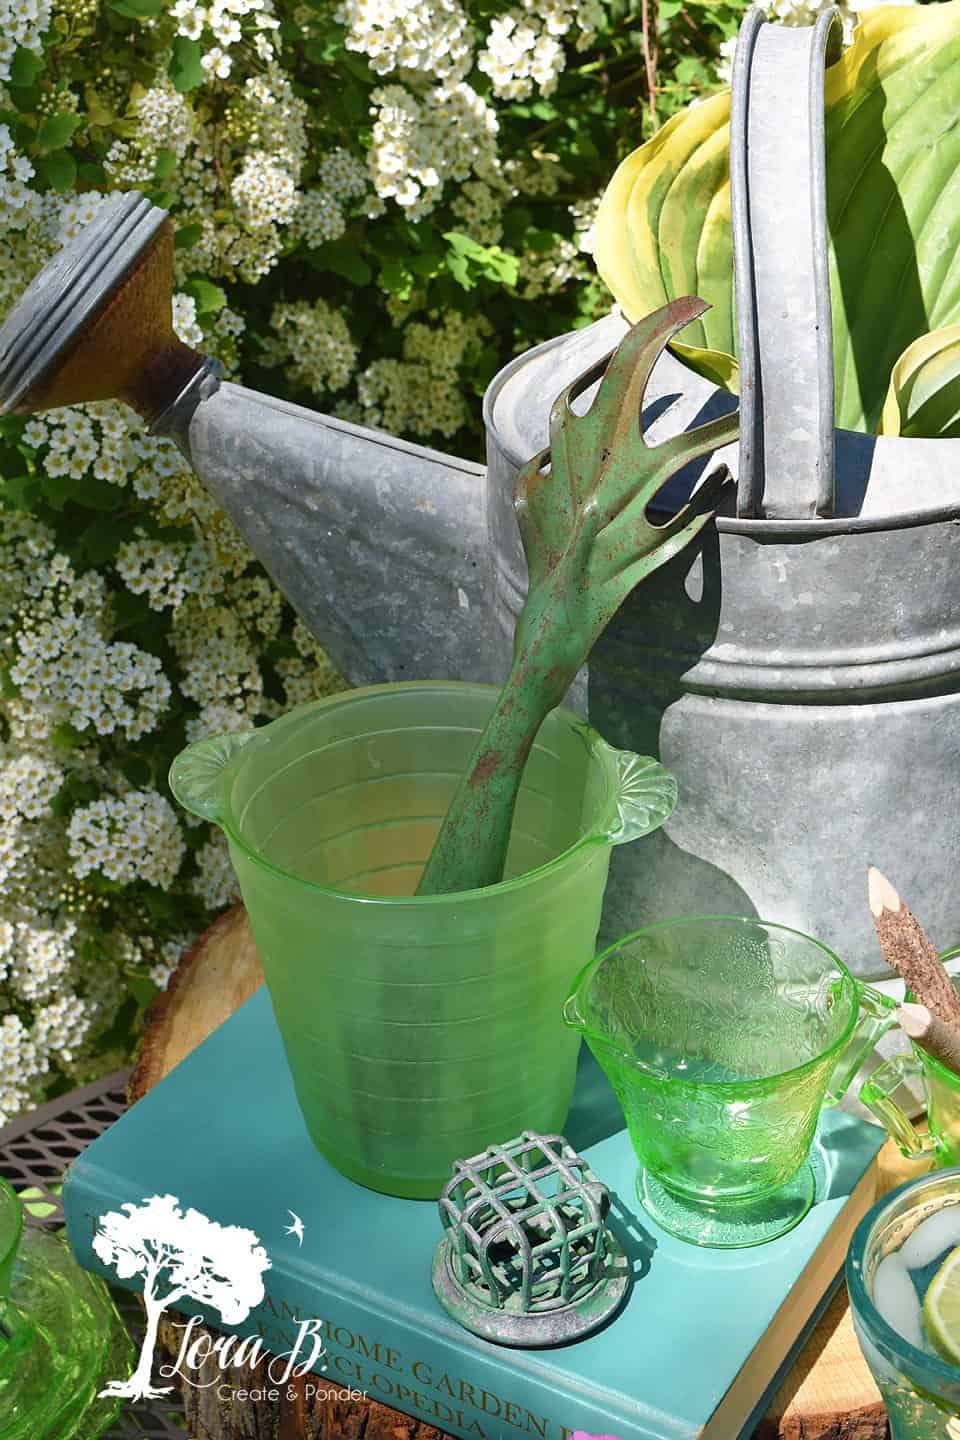 Vintage watering can and garden elements.